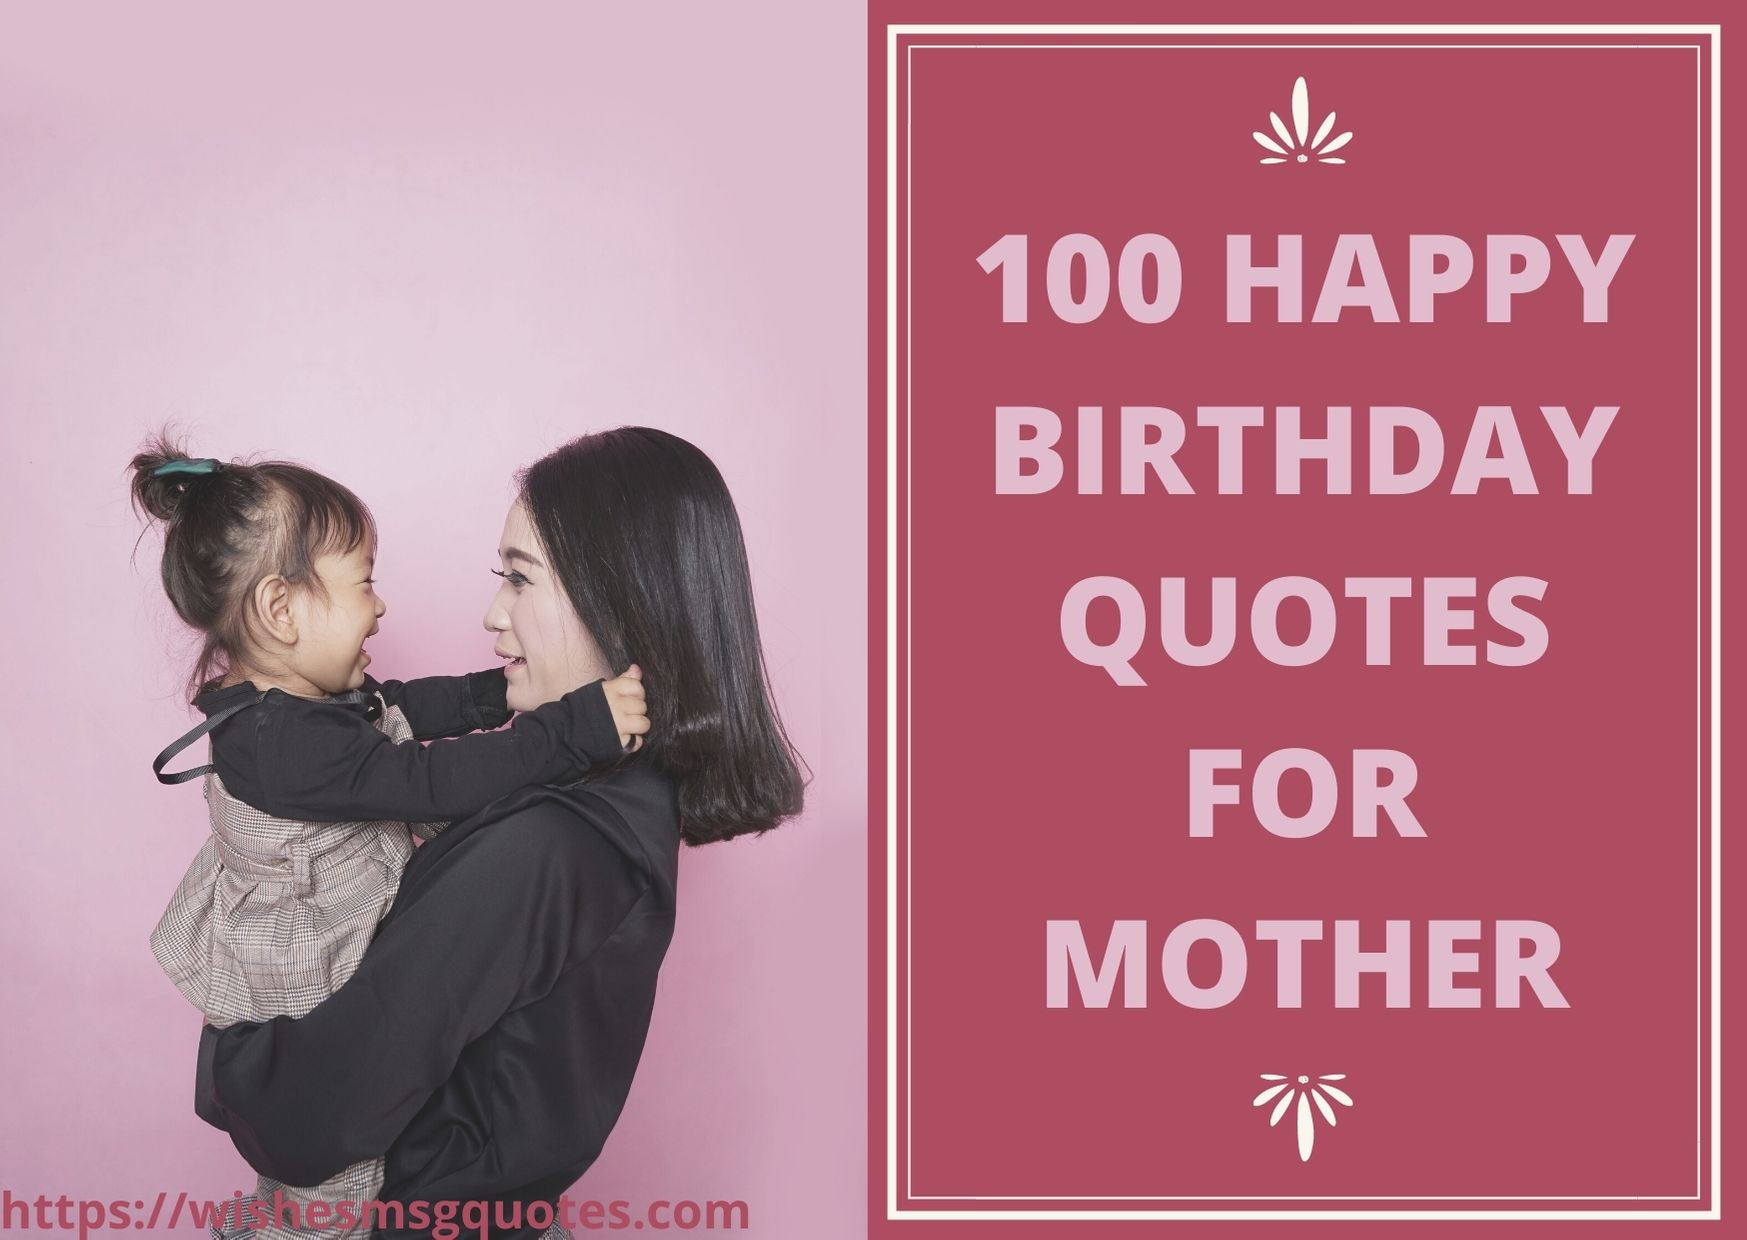 Heart Touching Birthday Quotes For Mother, Mom, Mama